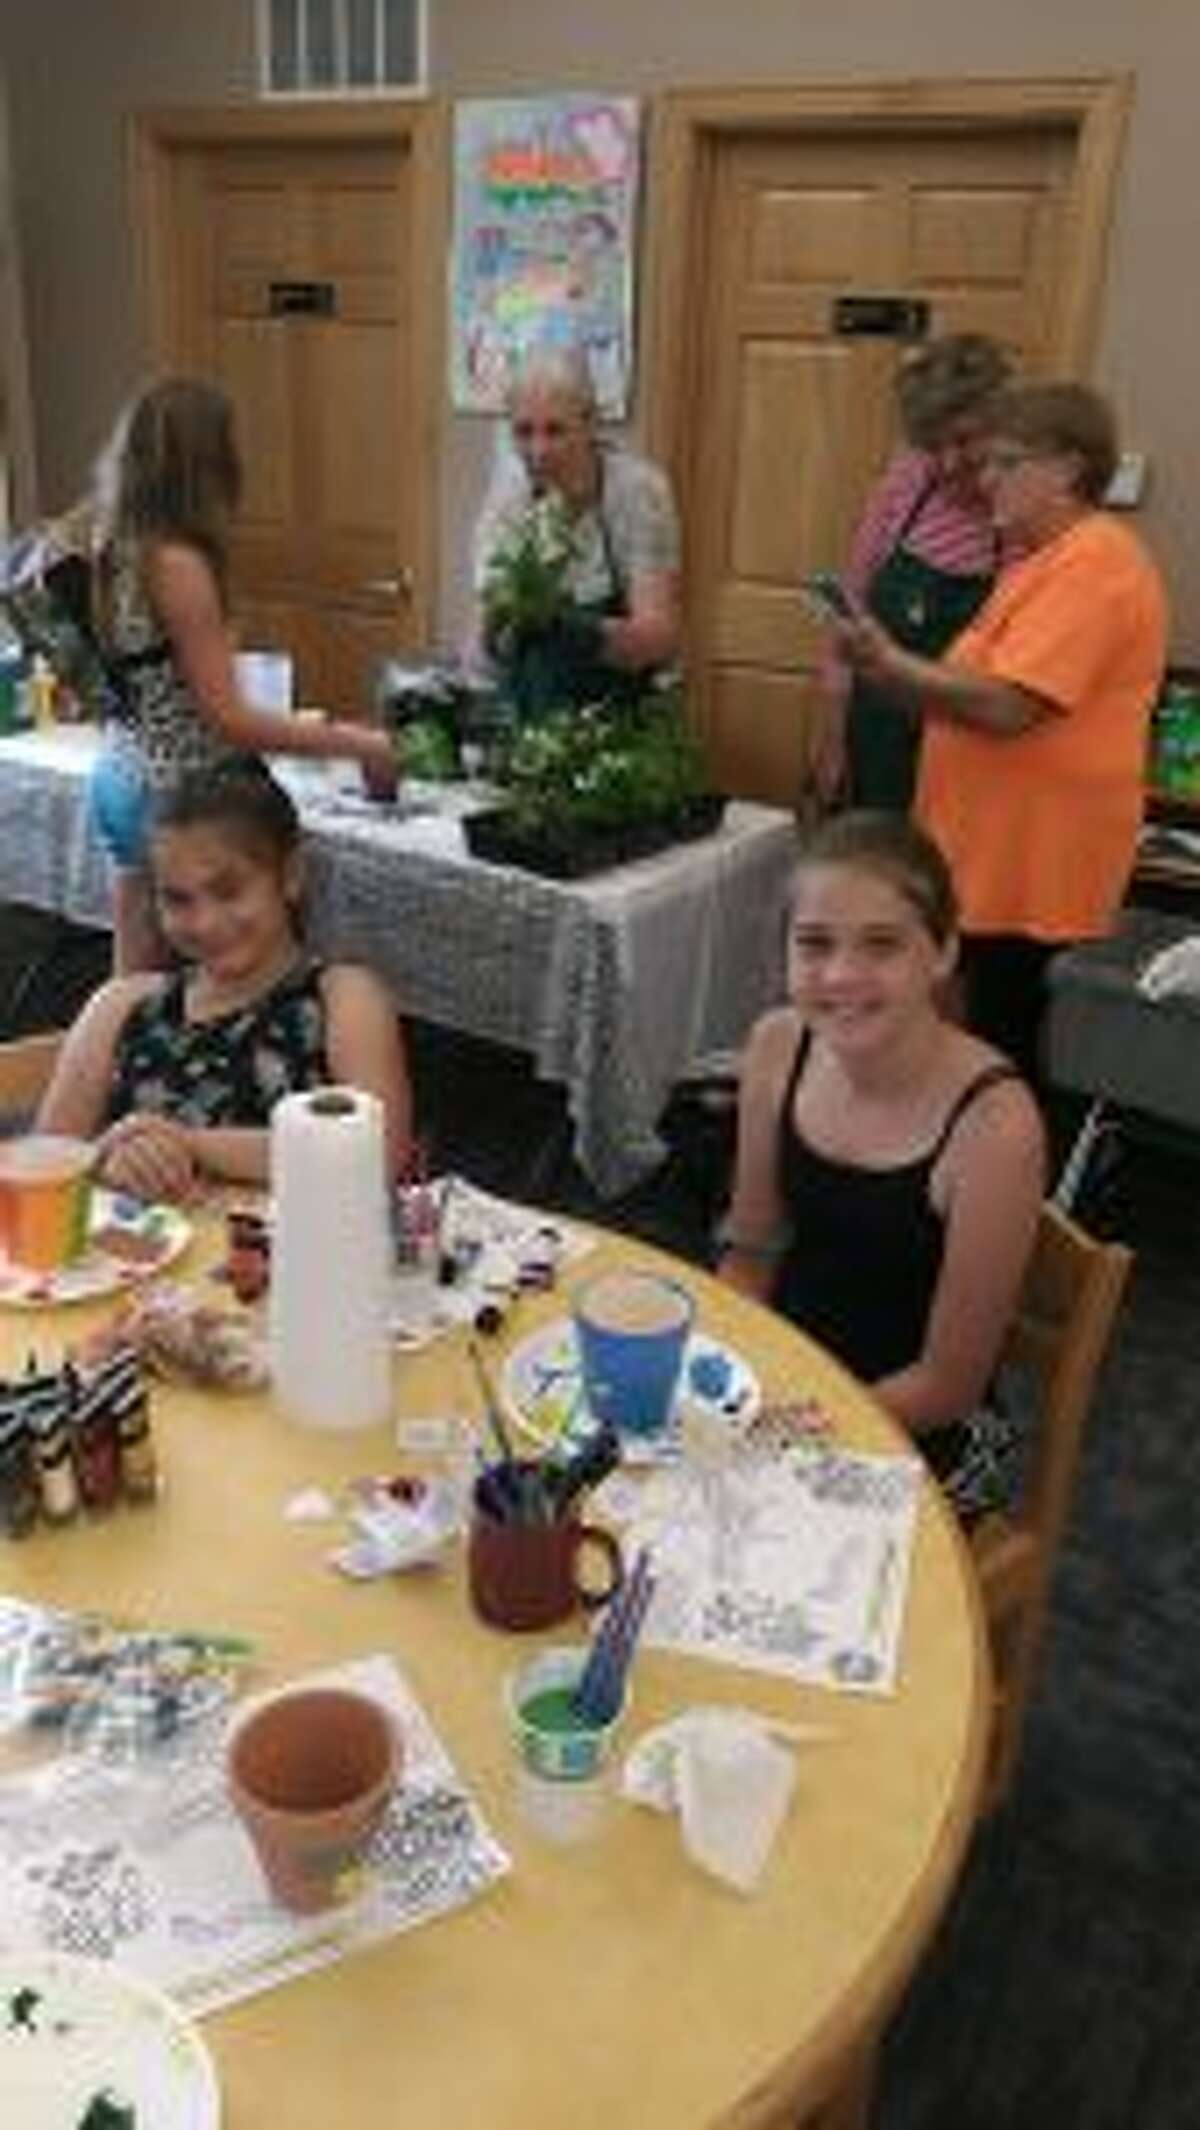 Spirit of the Woods Garden Club Inc. visited libraries throughout Manistee County last week. Children decorated flower pots and planted flowers in them. (Courtesy photo)